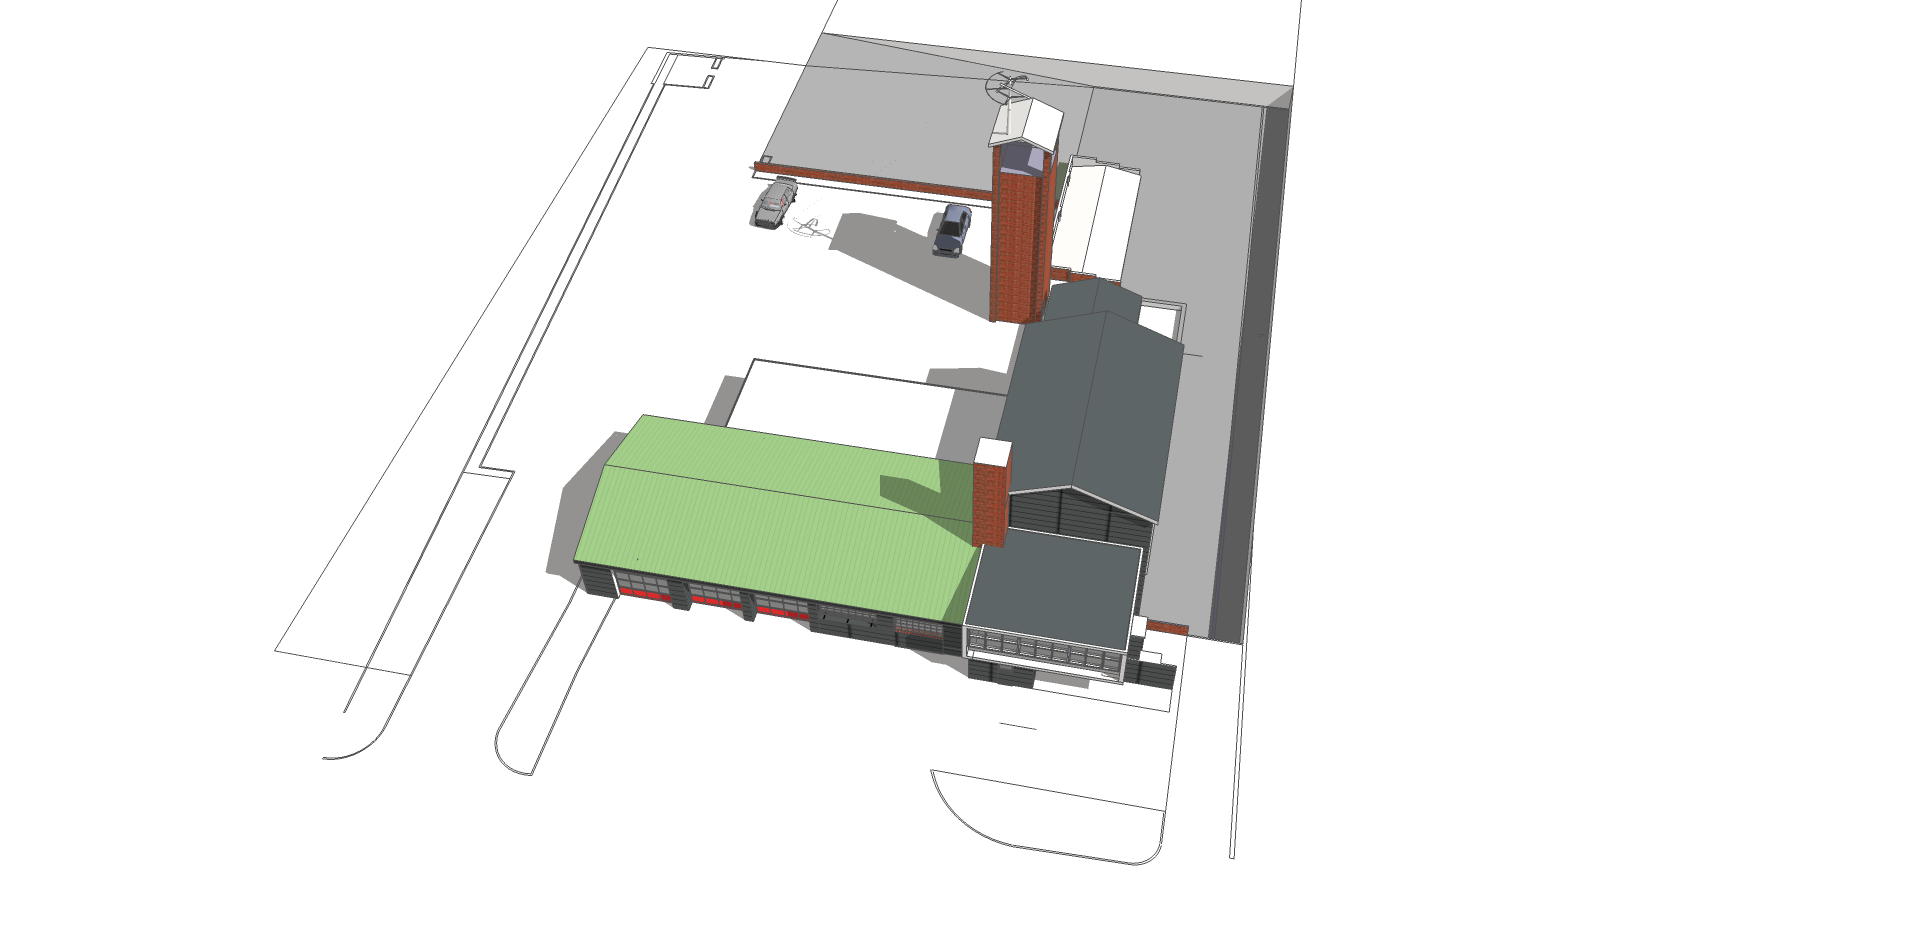 AGCROF FIRE STATION proposed site layout.png